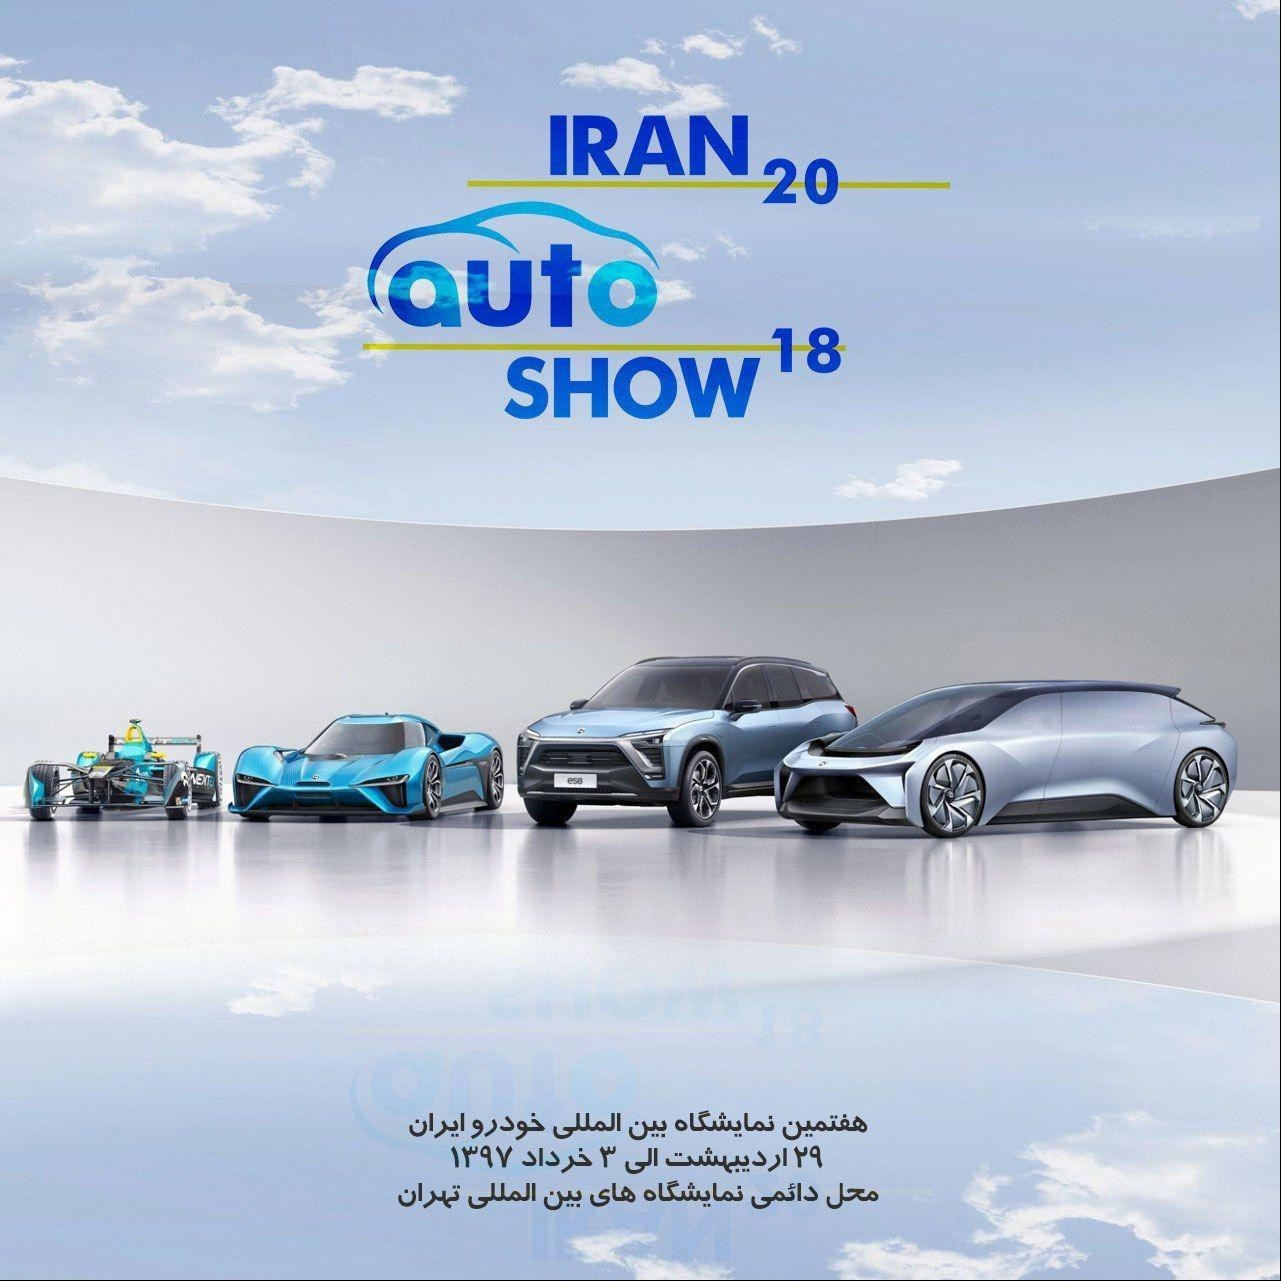 7th International Exhibition of Automobile (Iran Auto Show 2018)